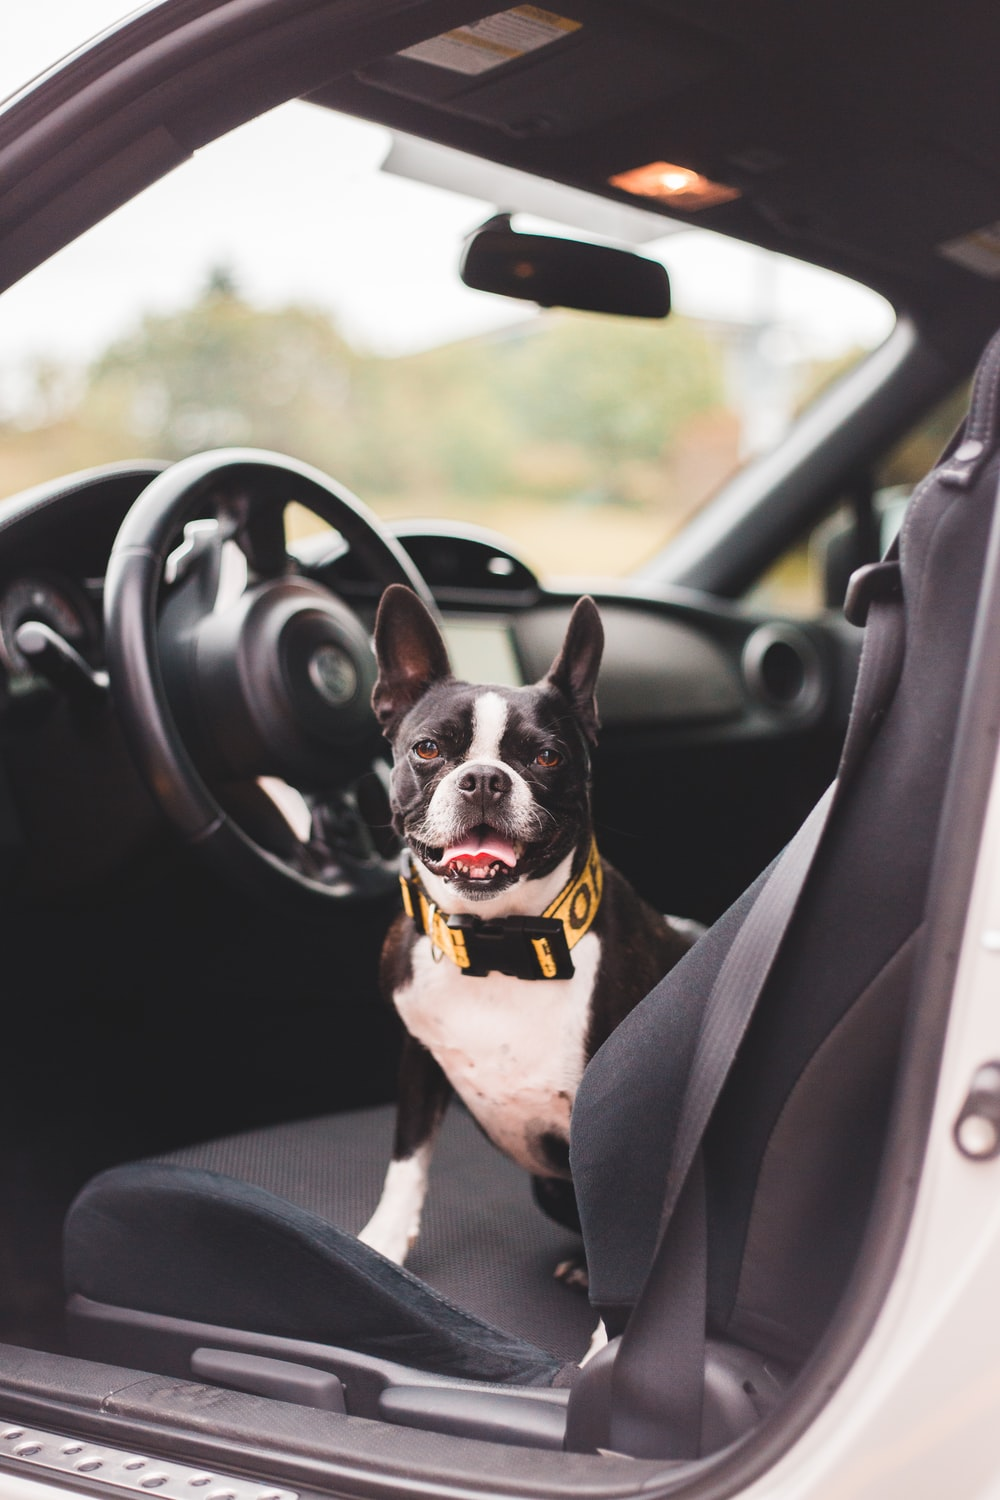 black and white short coated dog in car